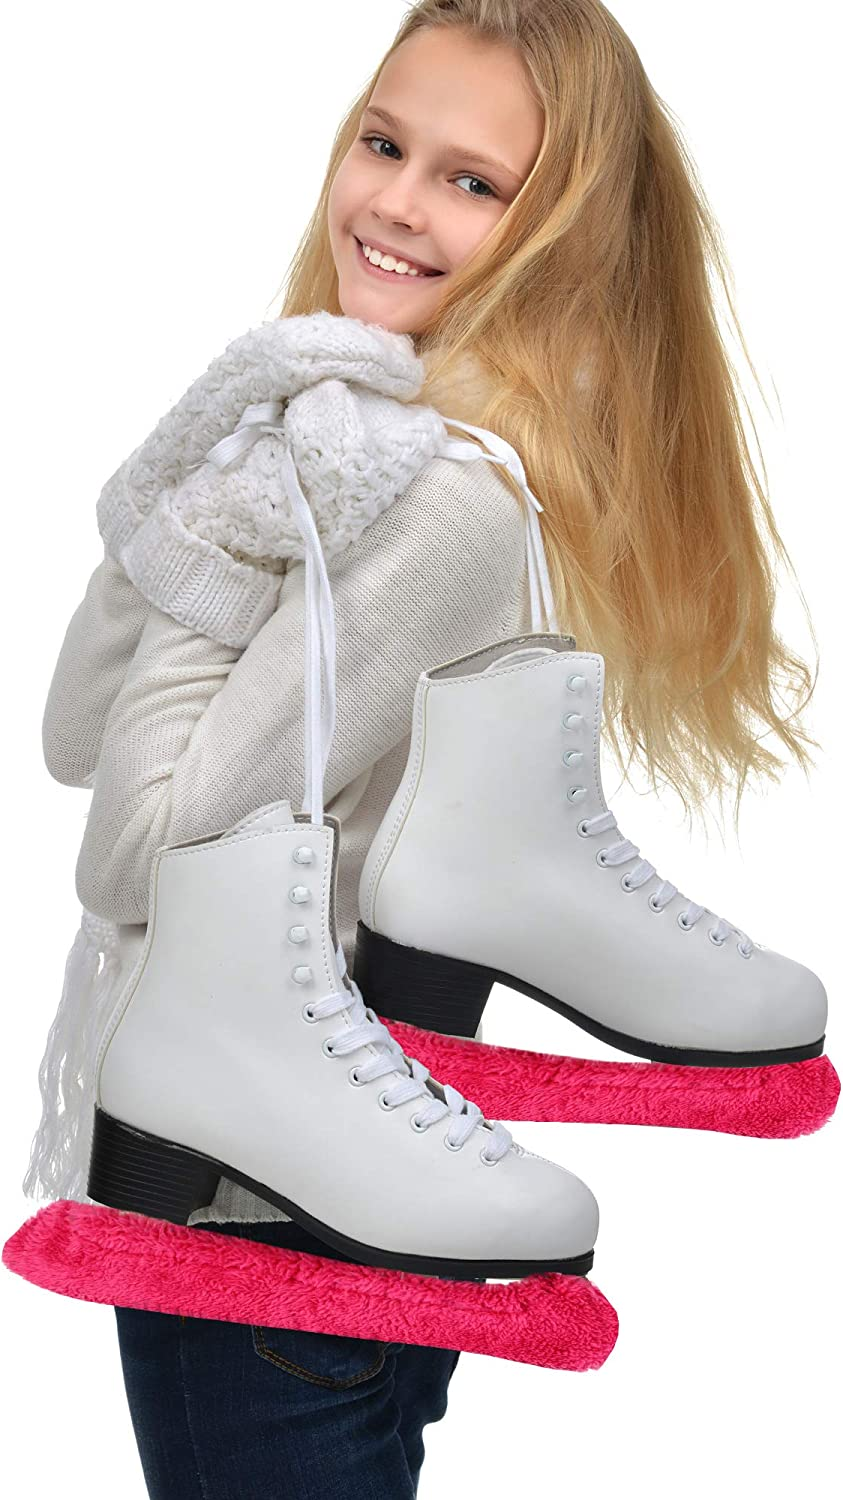 Suitable for Ice Skating and Hockey Skates Figure Skates M Zhanmai Microfiber Hockey Skate Blade Cover and Microfiber Towel Ultra Soft Absorbent Fast Drying